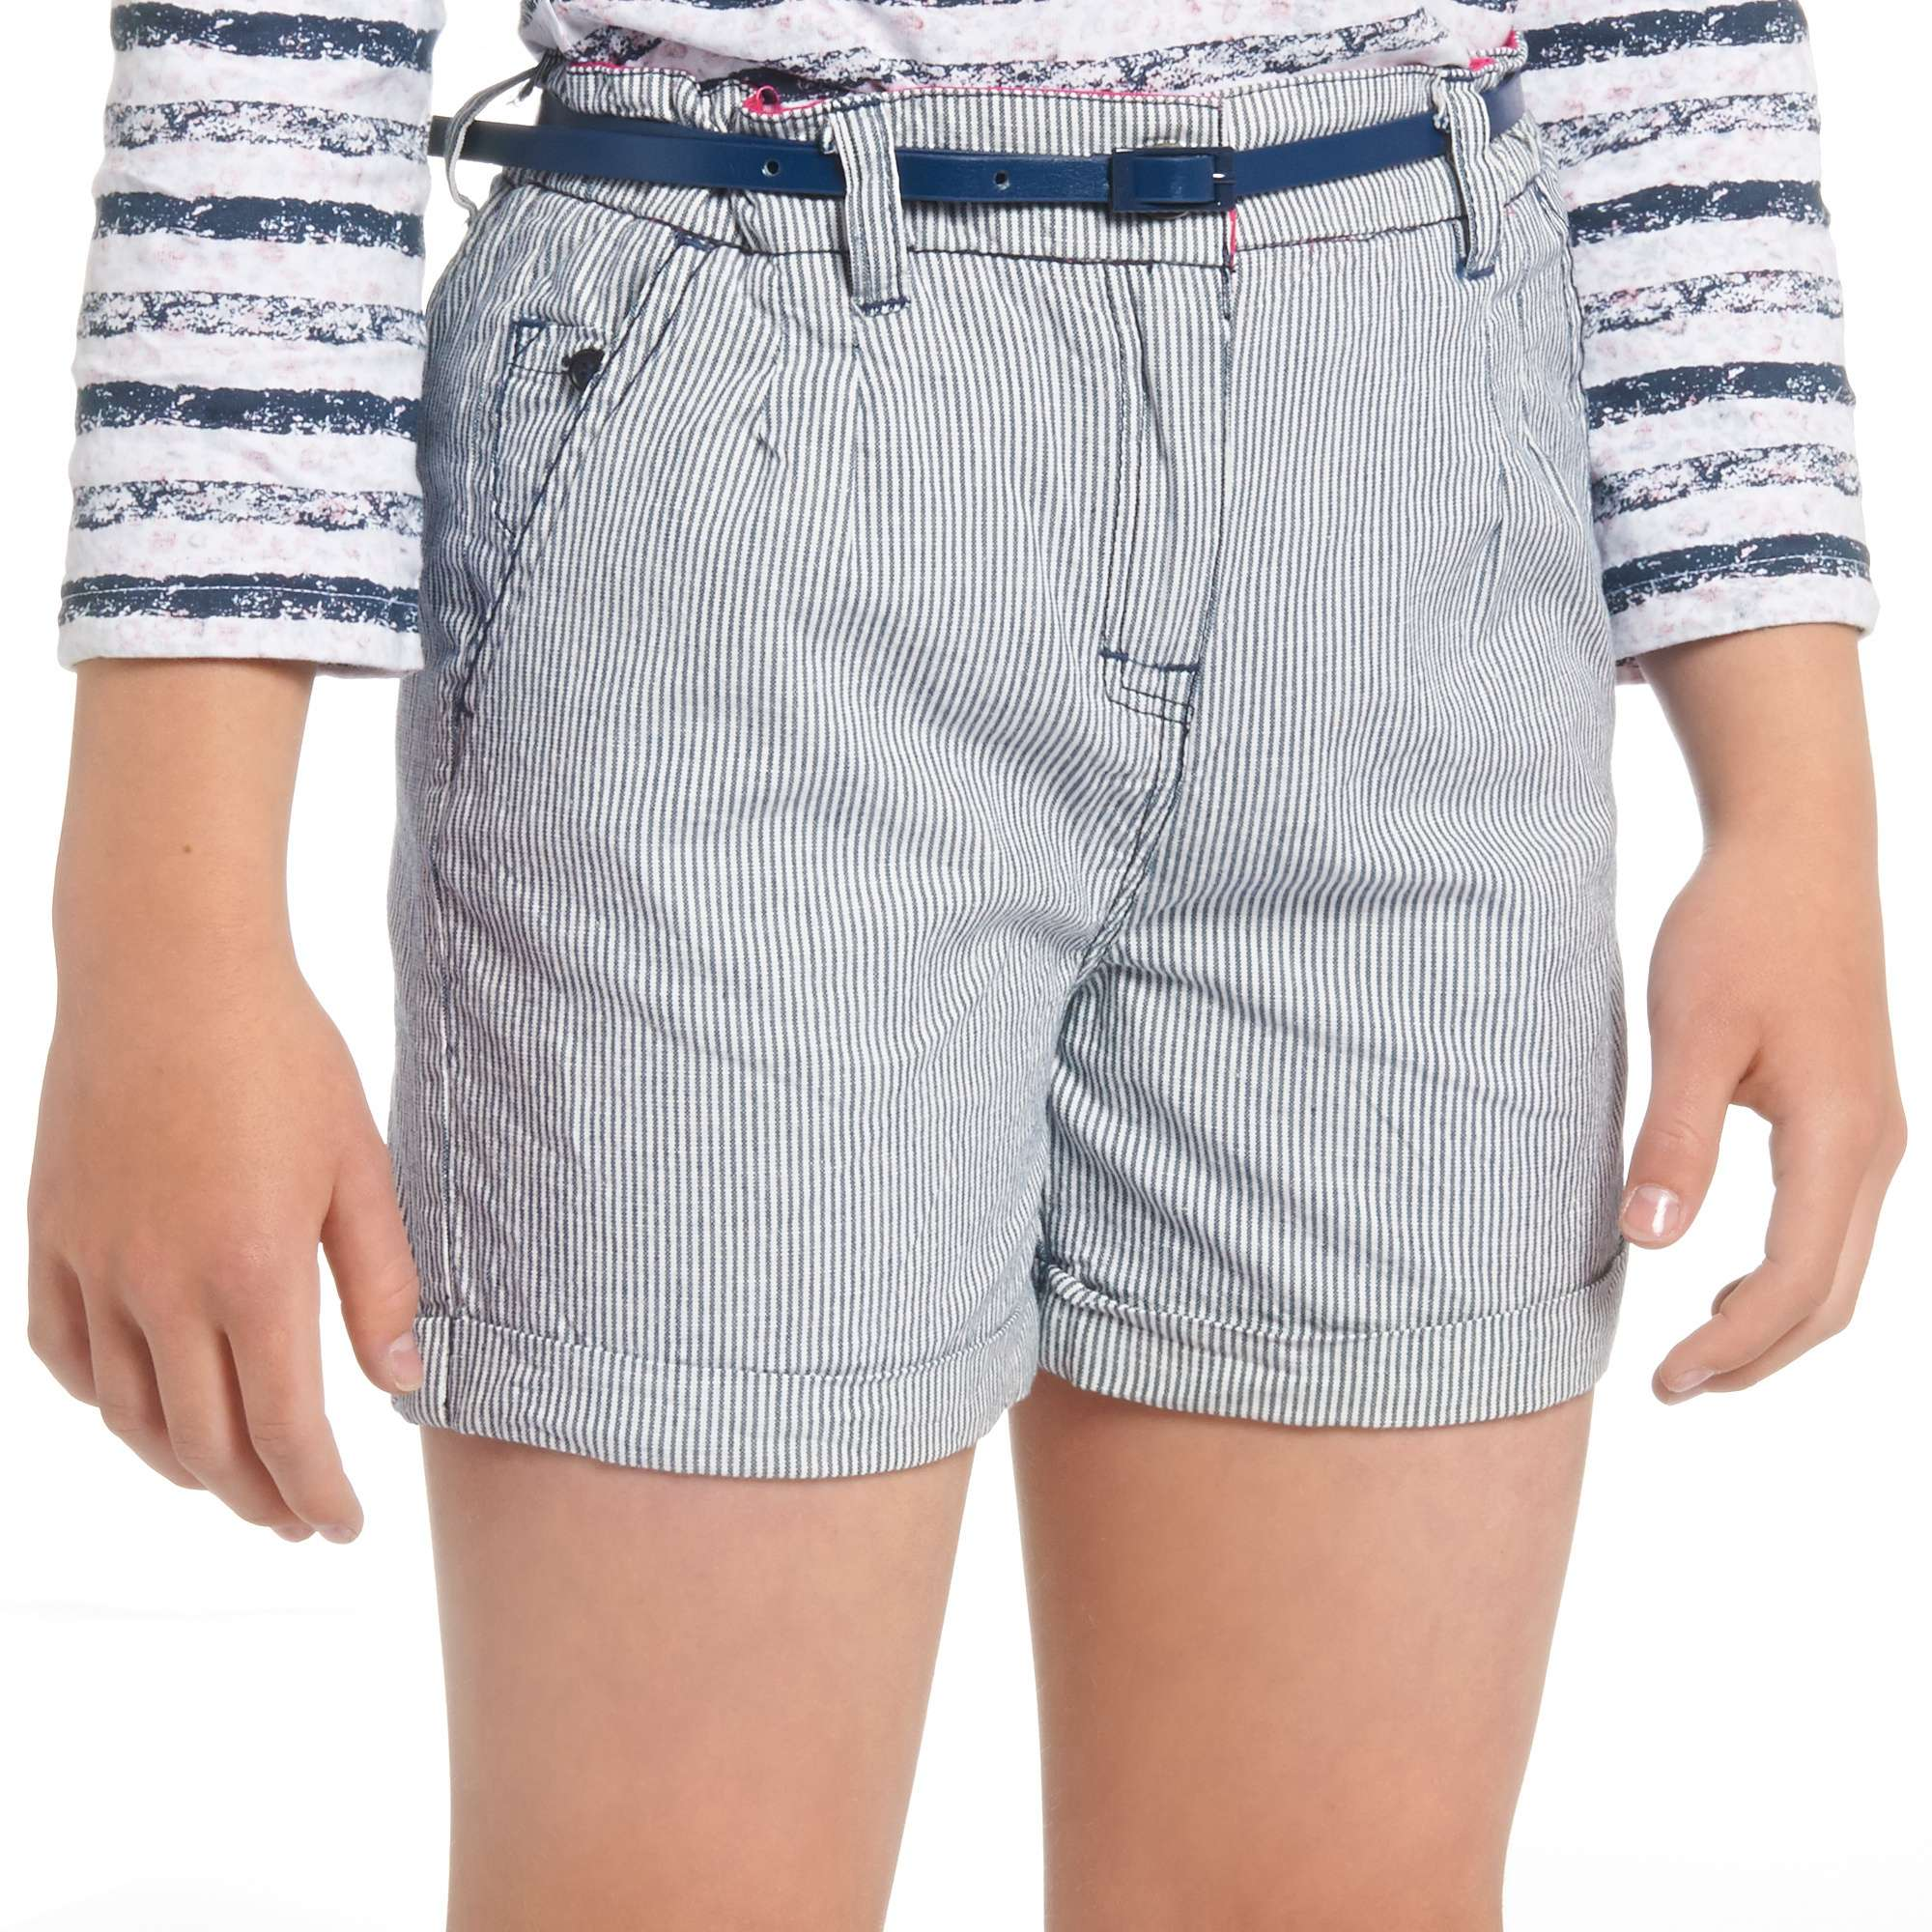 PETER STORM Girls' Ticking Stripe Shorts